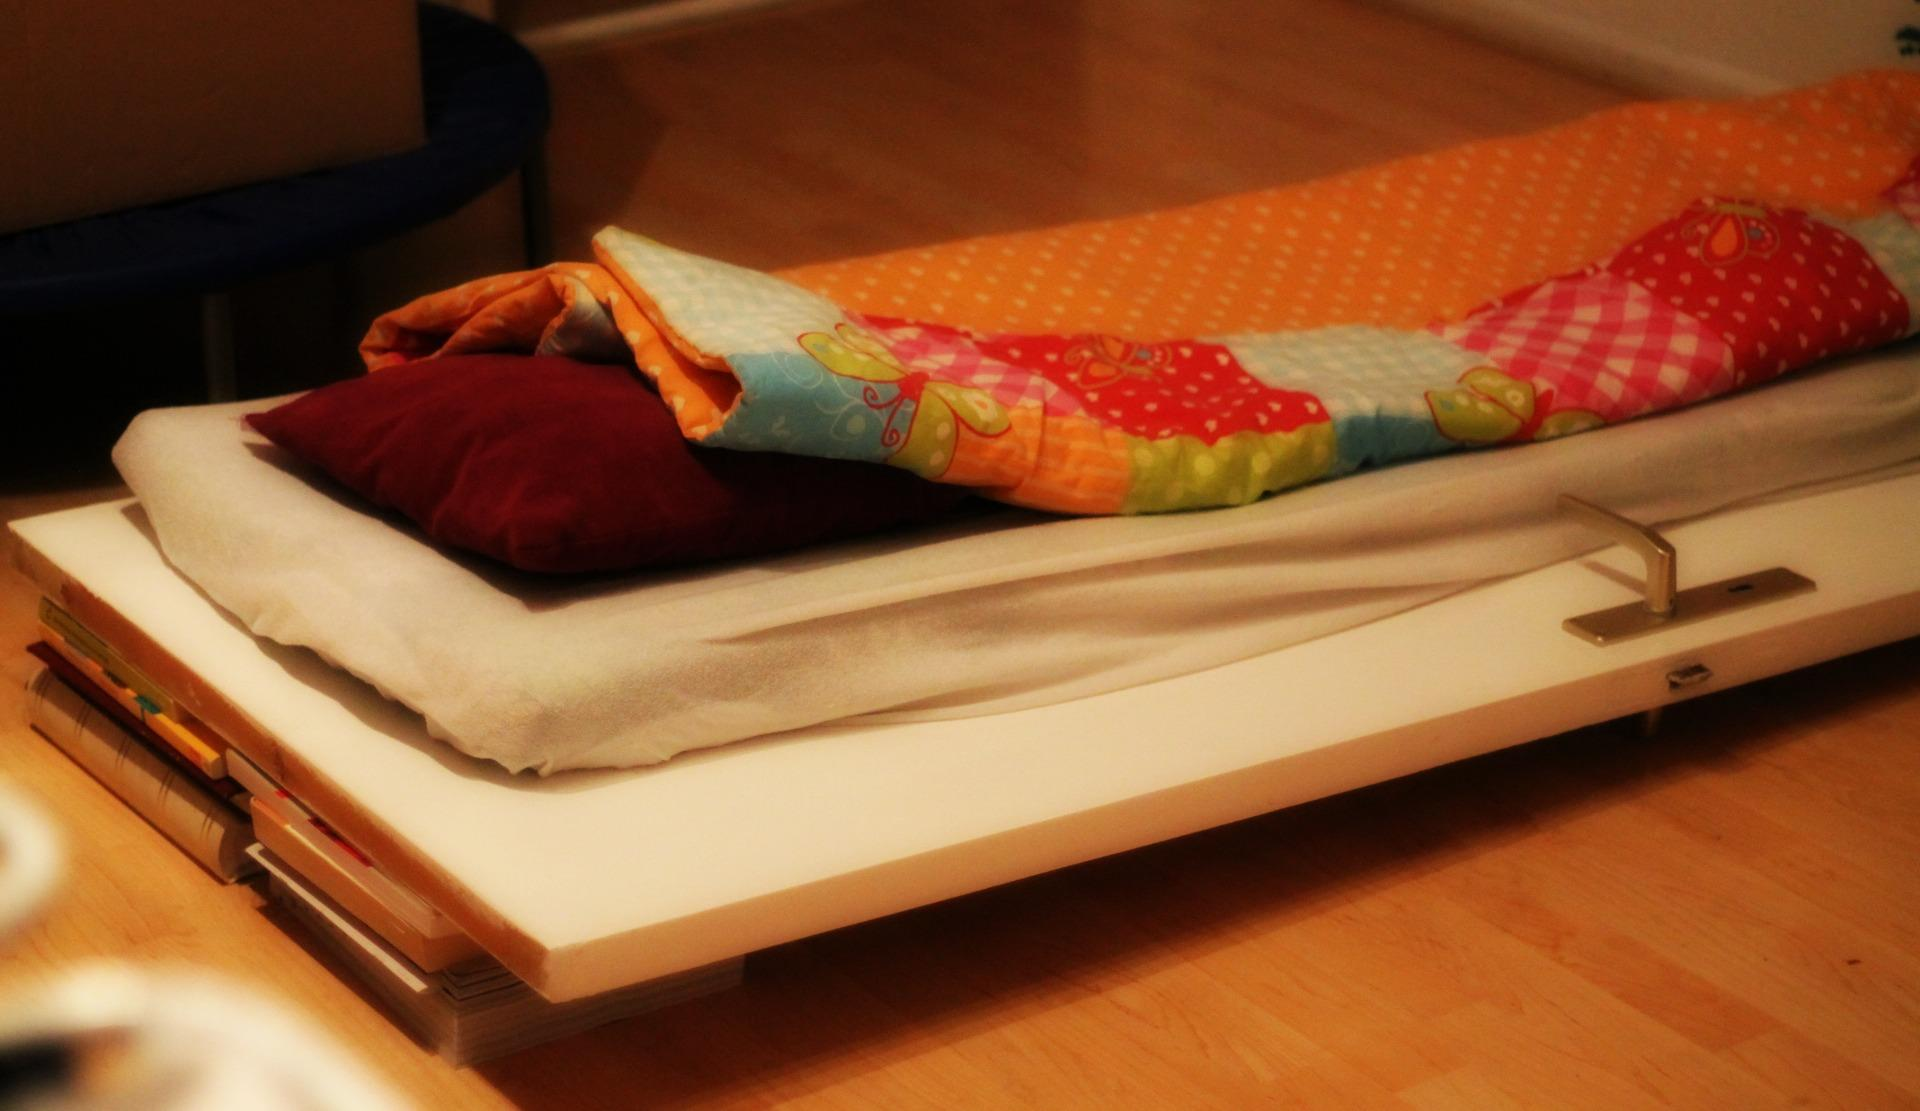 Inclined_bed_using_door_plus_books_ibt_1.jpg - 142.49 kB